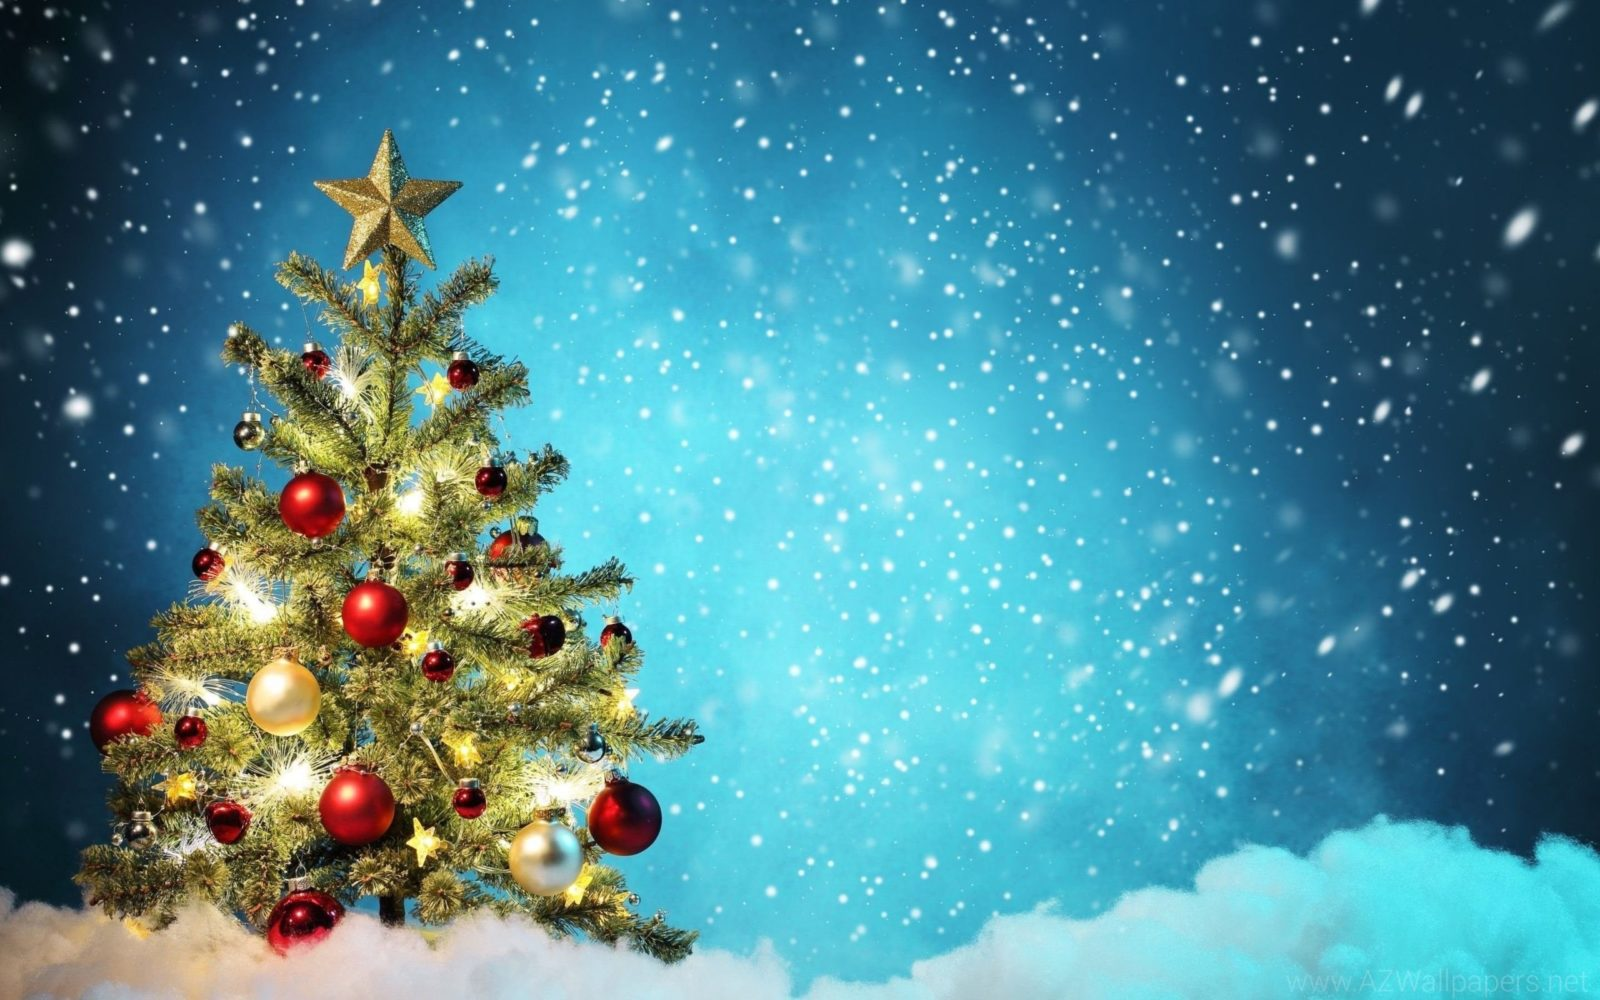 Christmas wallpapers and images for desktop, computer, laptop